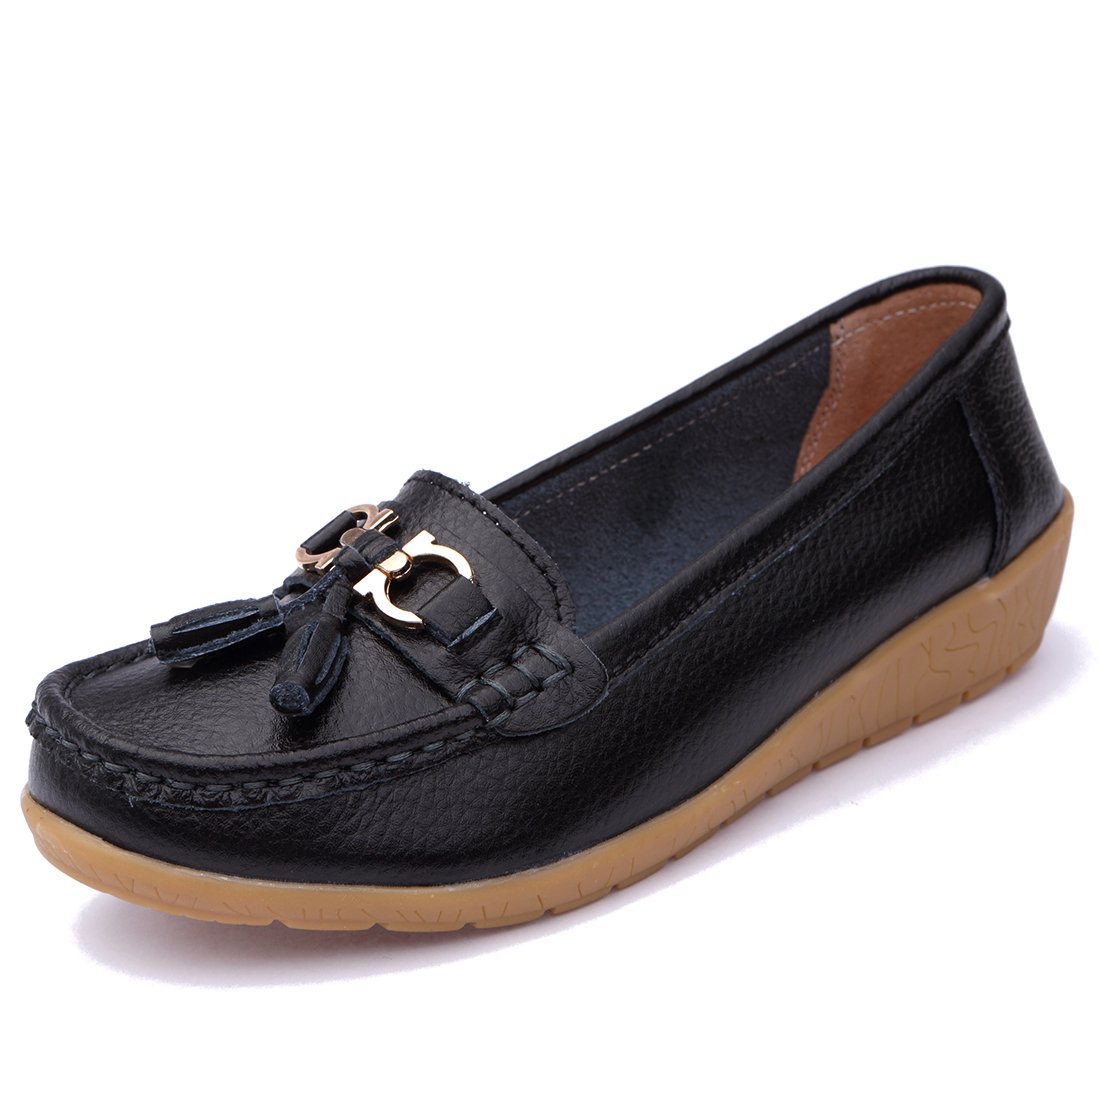 BTDREAM Women's Leather Tassel Loafers Casual Moccasin Driving Flat Slip-On Shoes Black Size 44